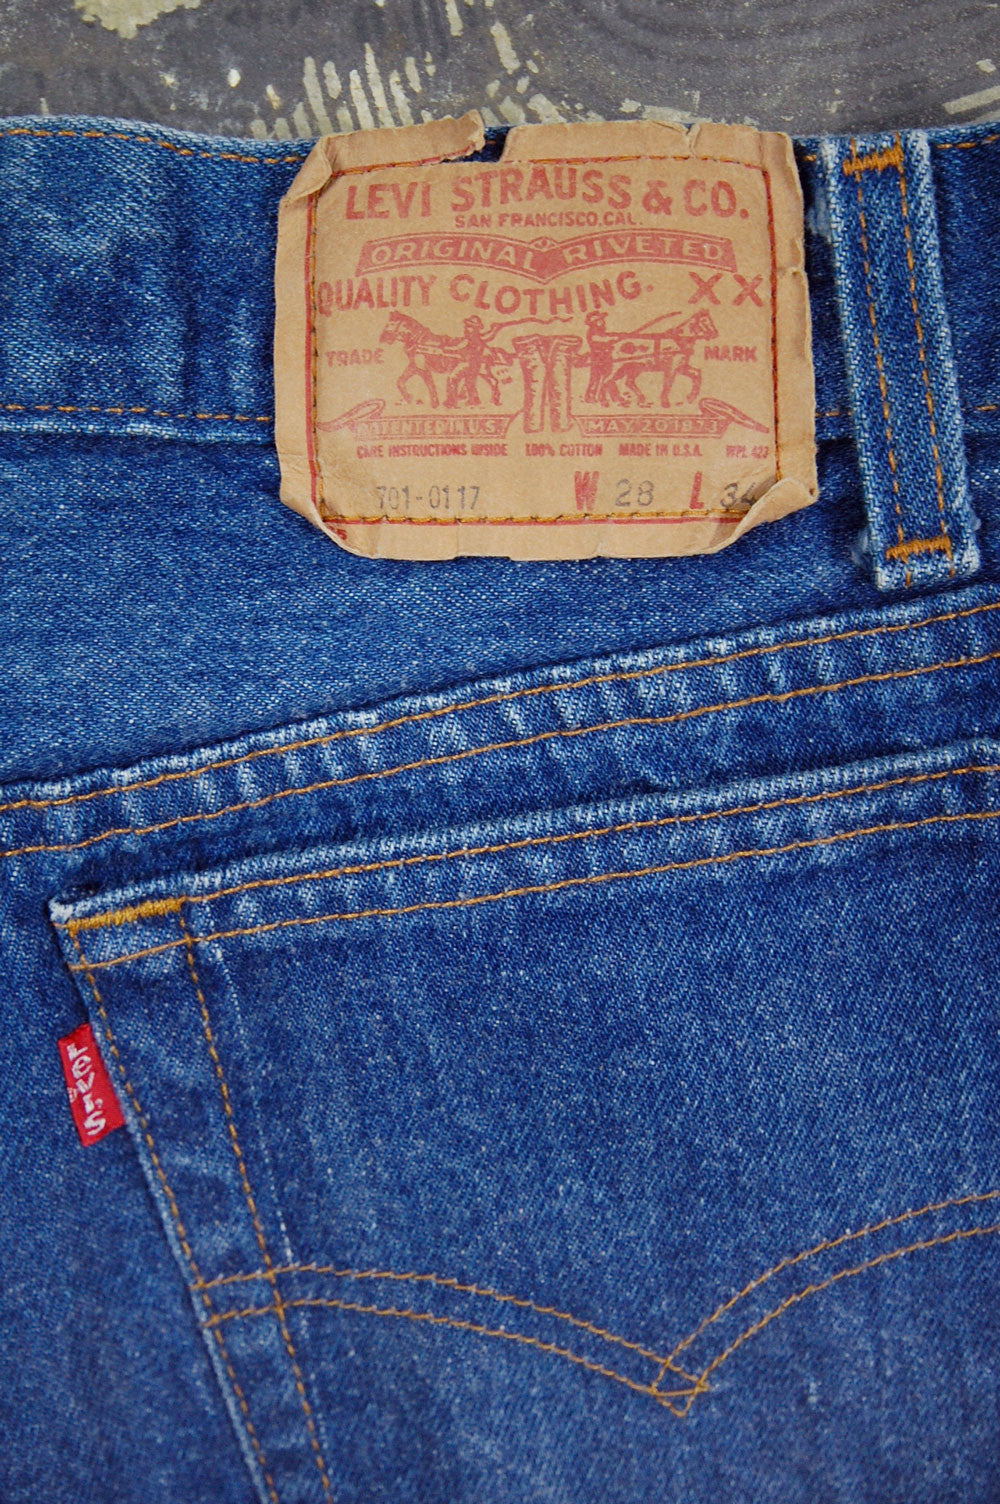 Vintage Levi's 701 Student Fit USA Transitional One Wash Denim Jeans